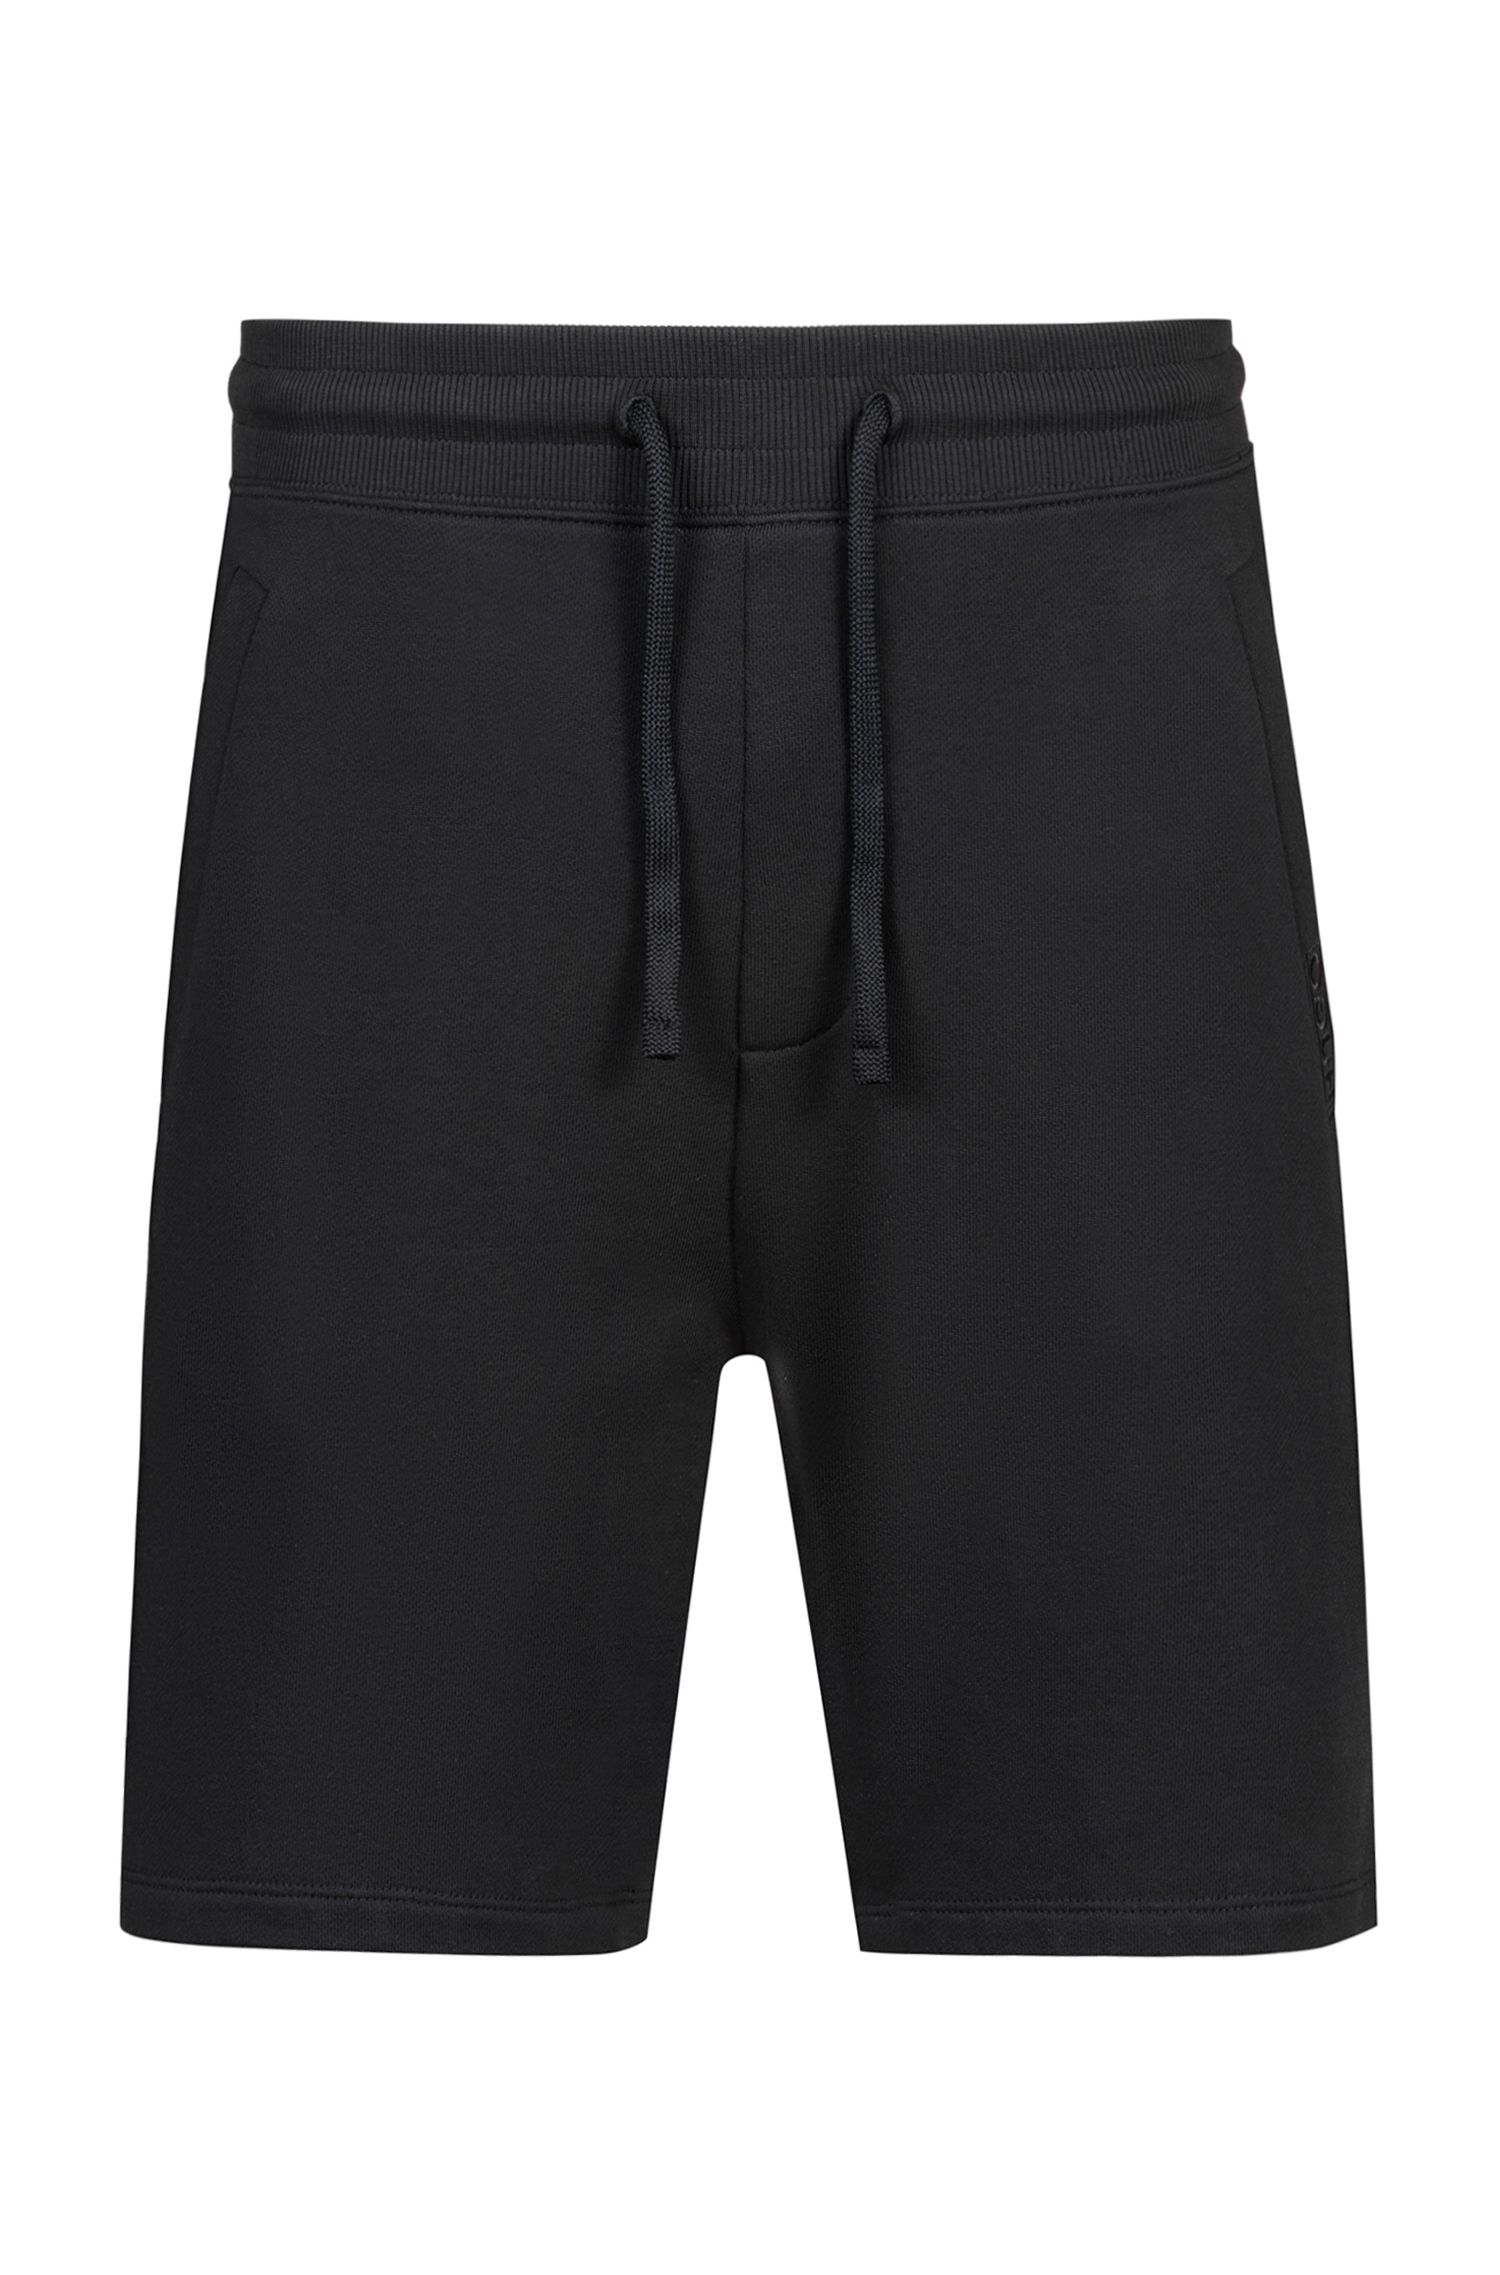 Drawstring shorts in French terry, Black